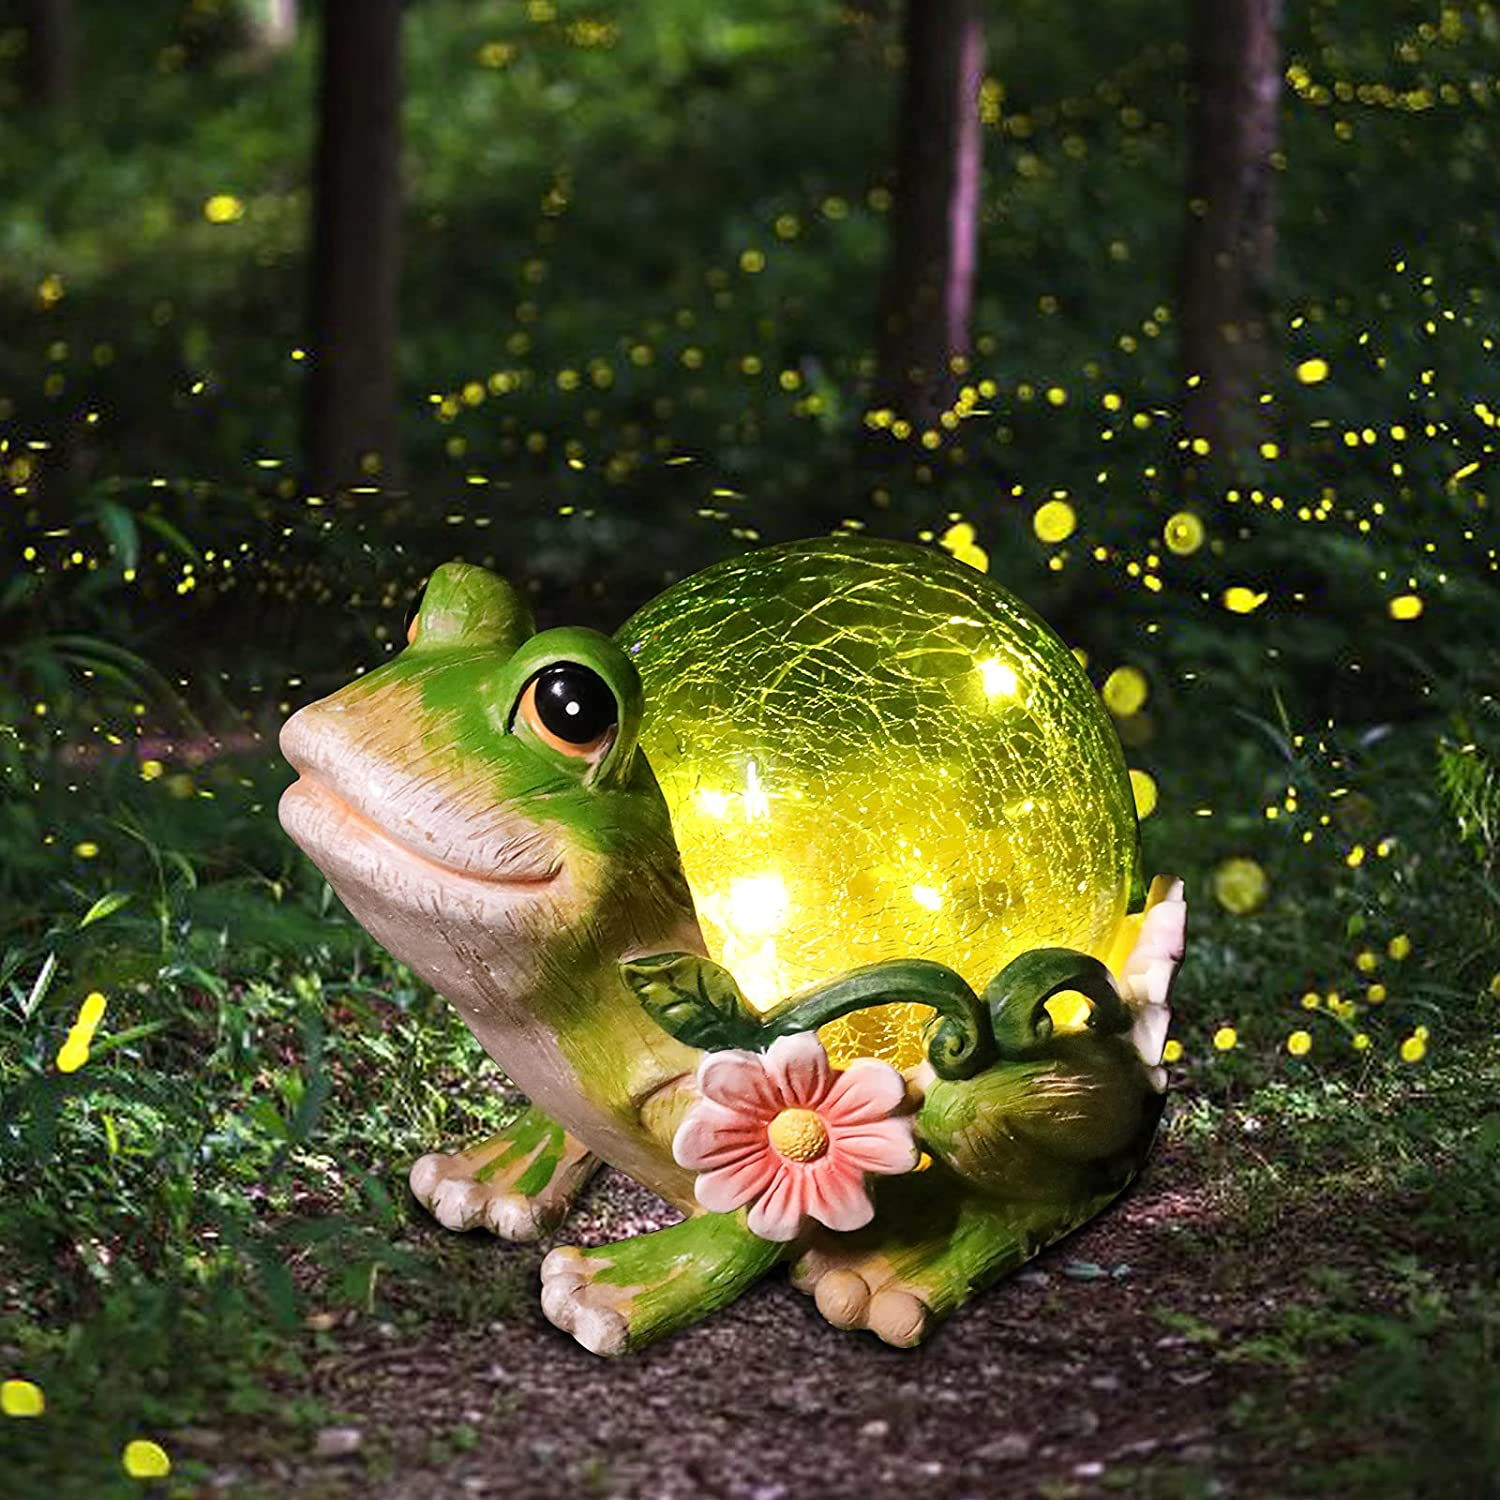 Solar Garden Statues Outdoor Figurines - Frog Lawn Ornament with Solar Lights Cracked Glass Outdoor Decor for Patio Yard Decorations